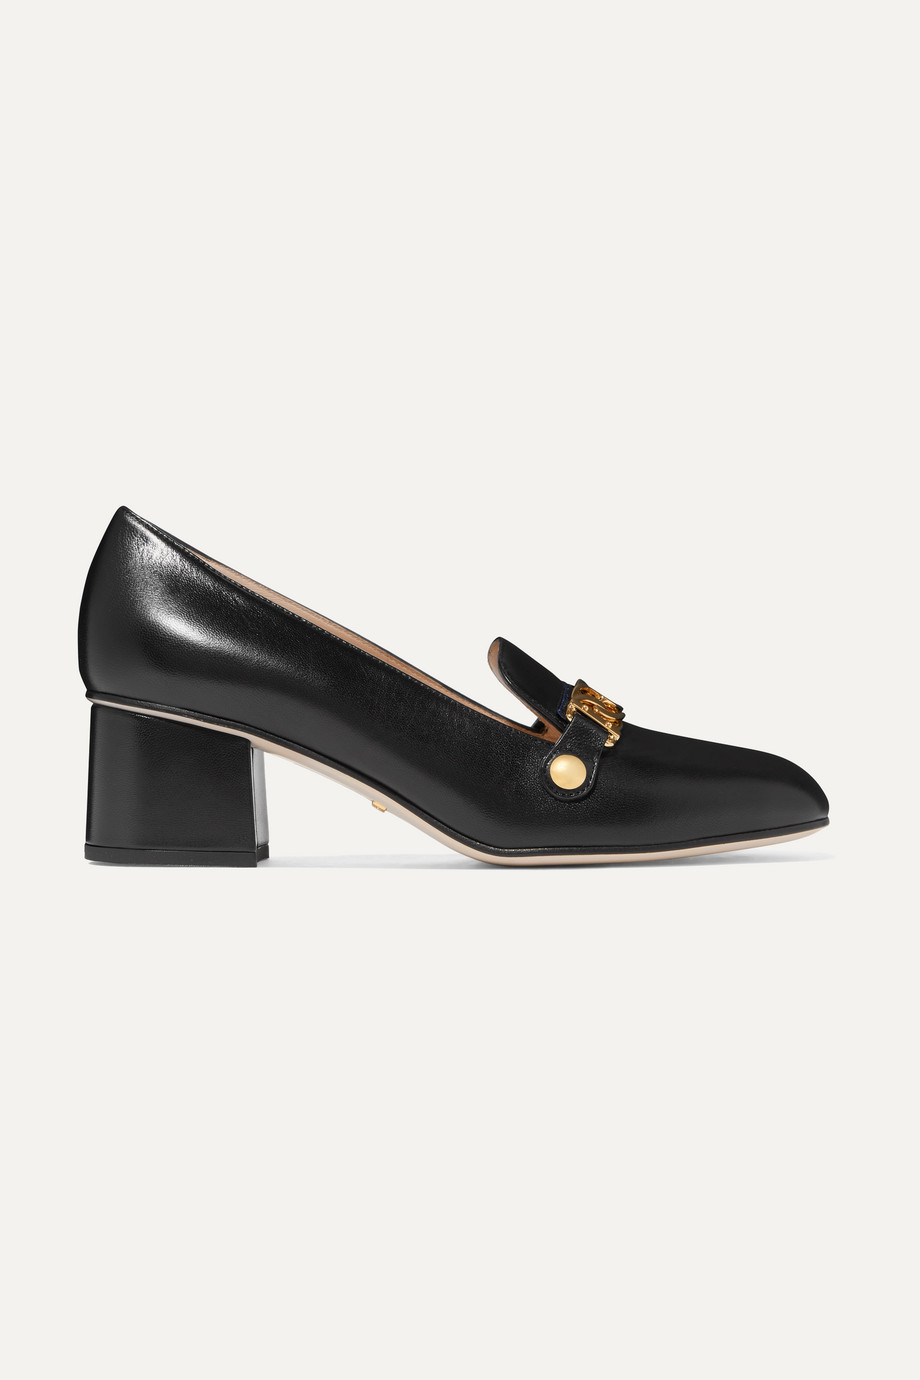 Gucci Sylvie chain-embellished leather pumps